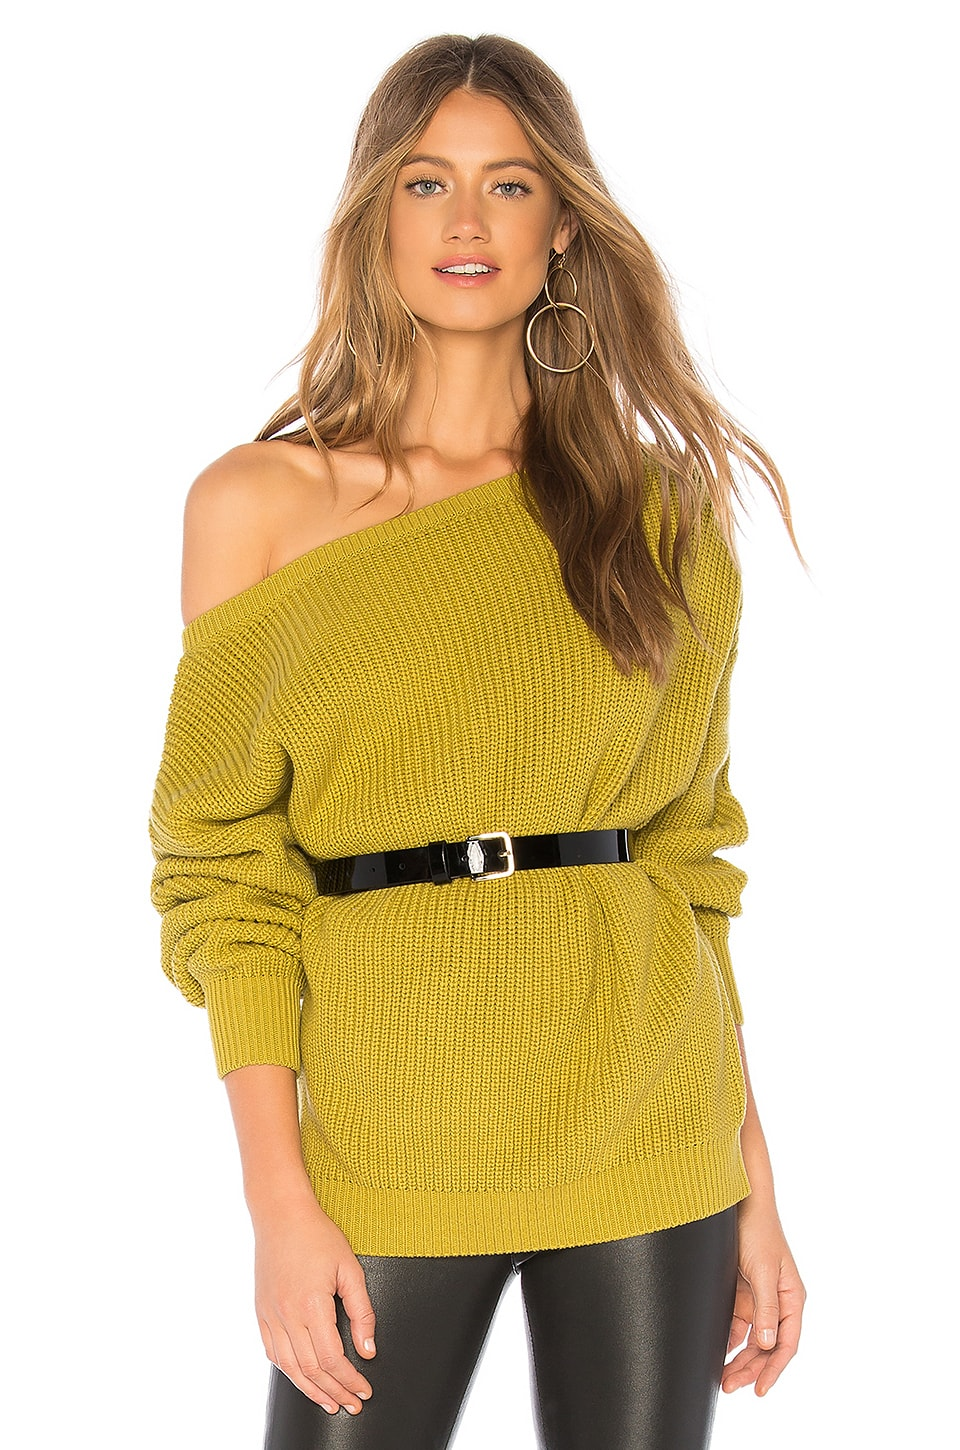 CALLAHAN Jonna Sweater in Olive